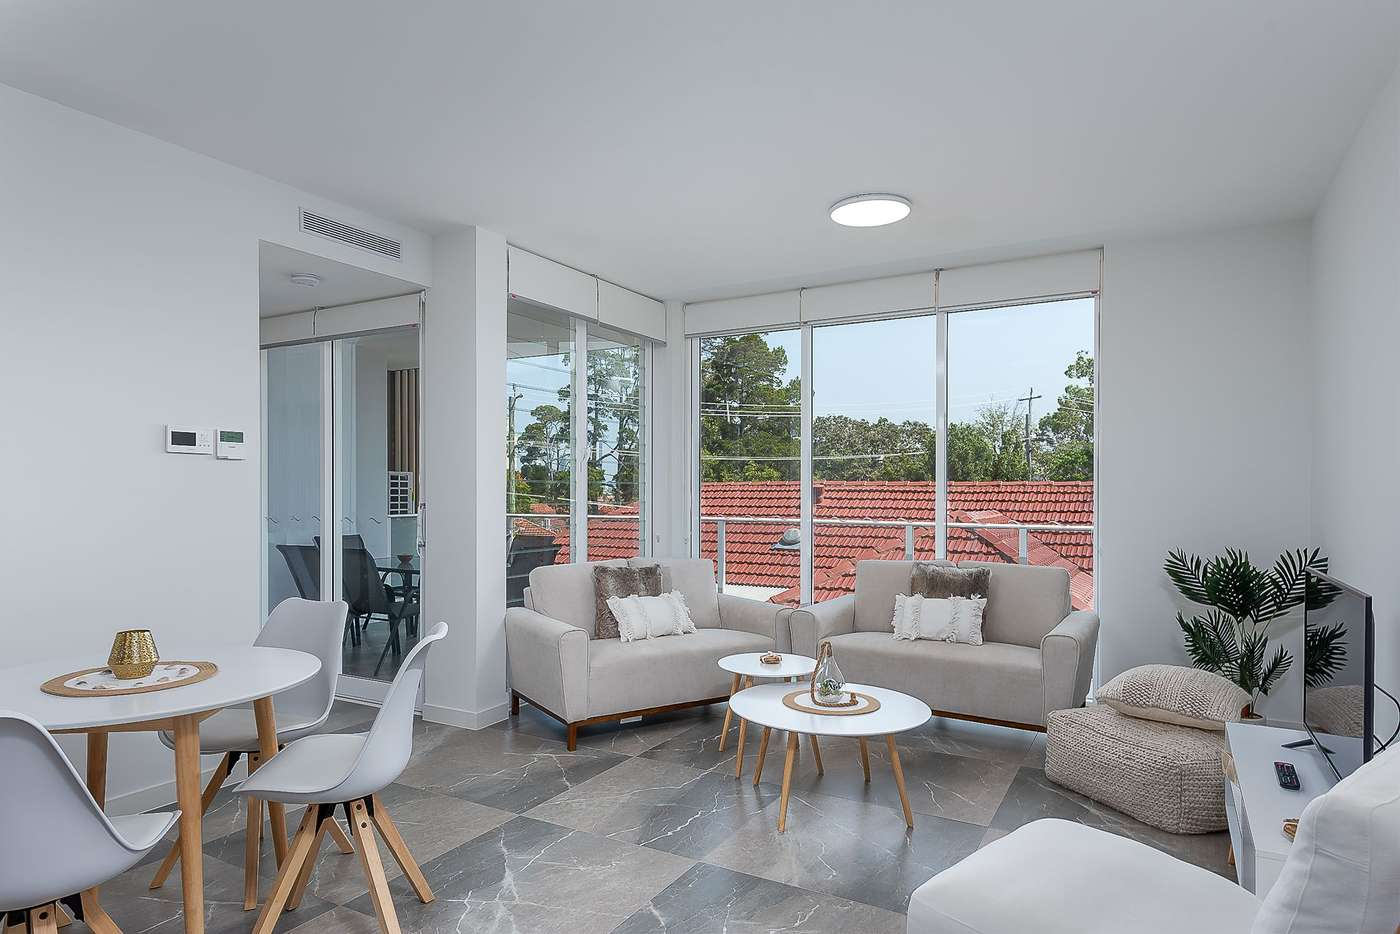 Main view of Homely house listing, 204/8 Meron Street, Southport QLD 4215